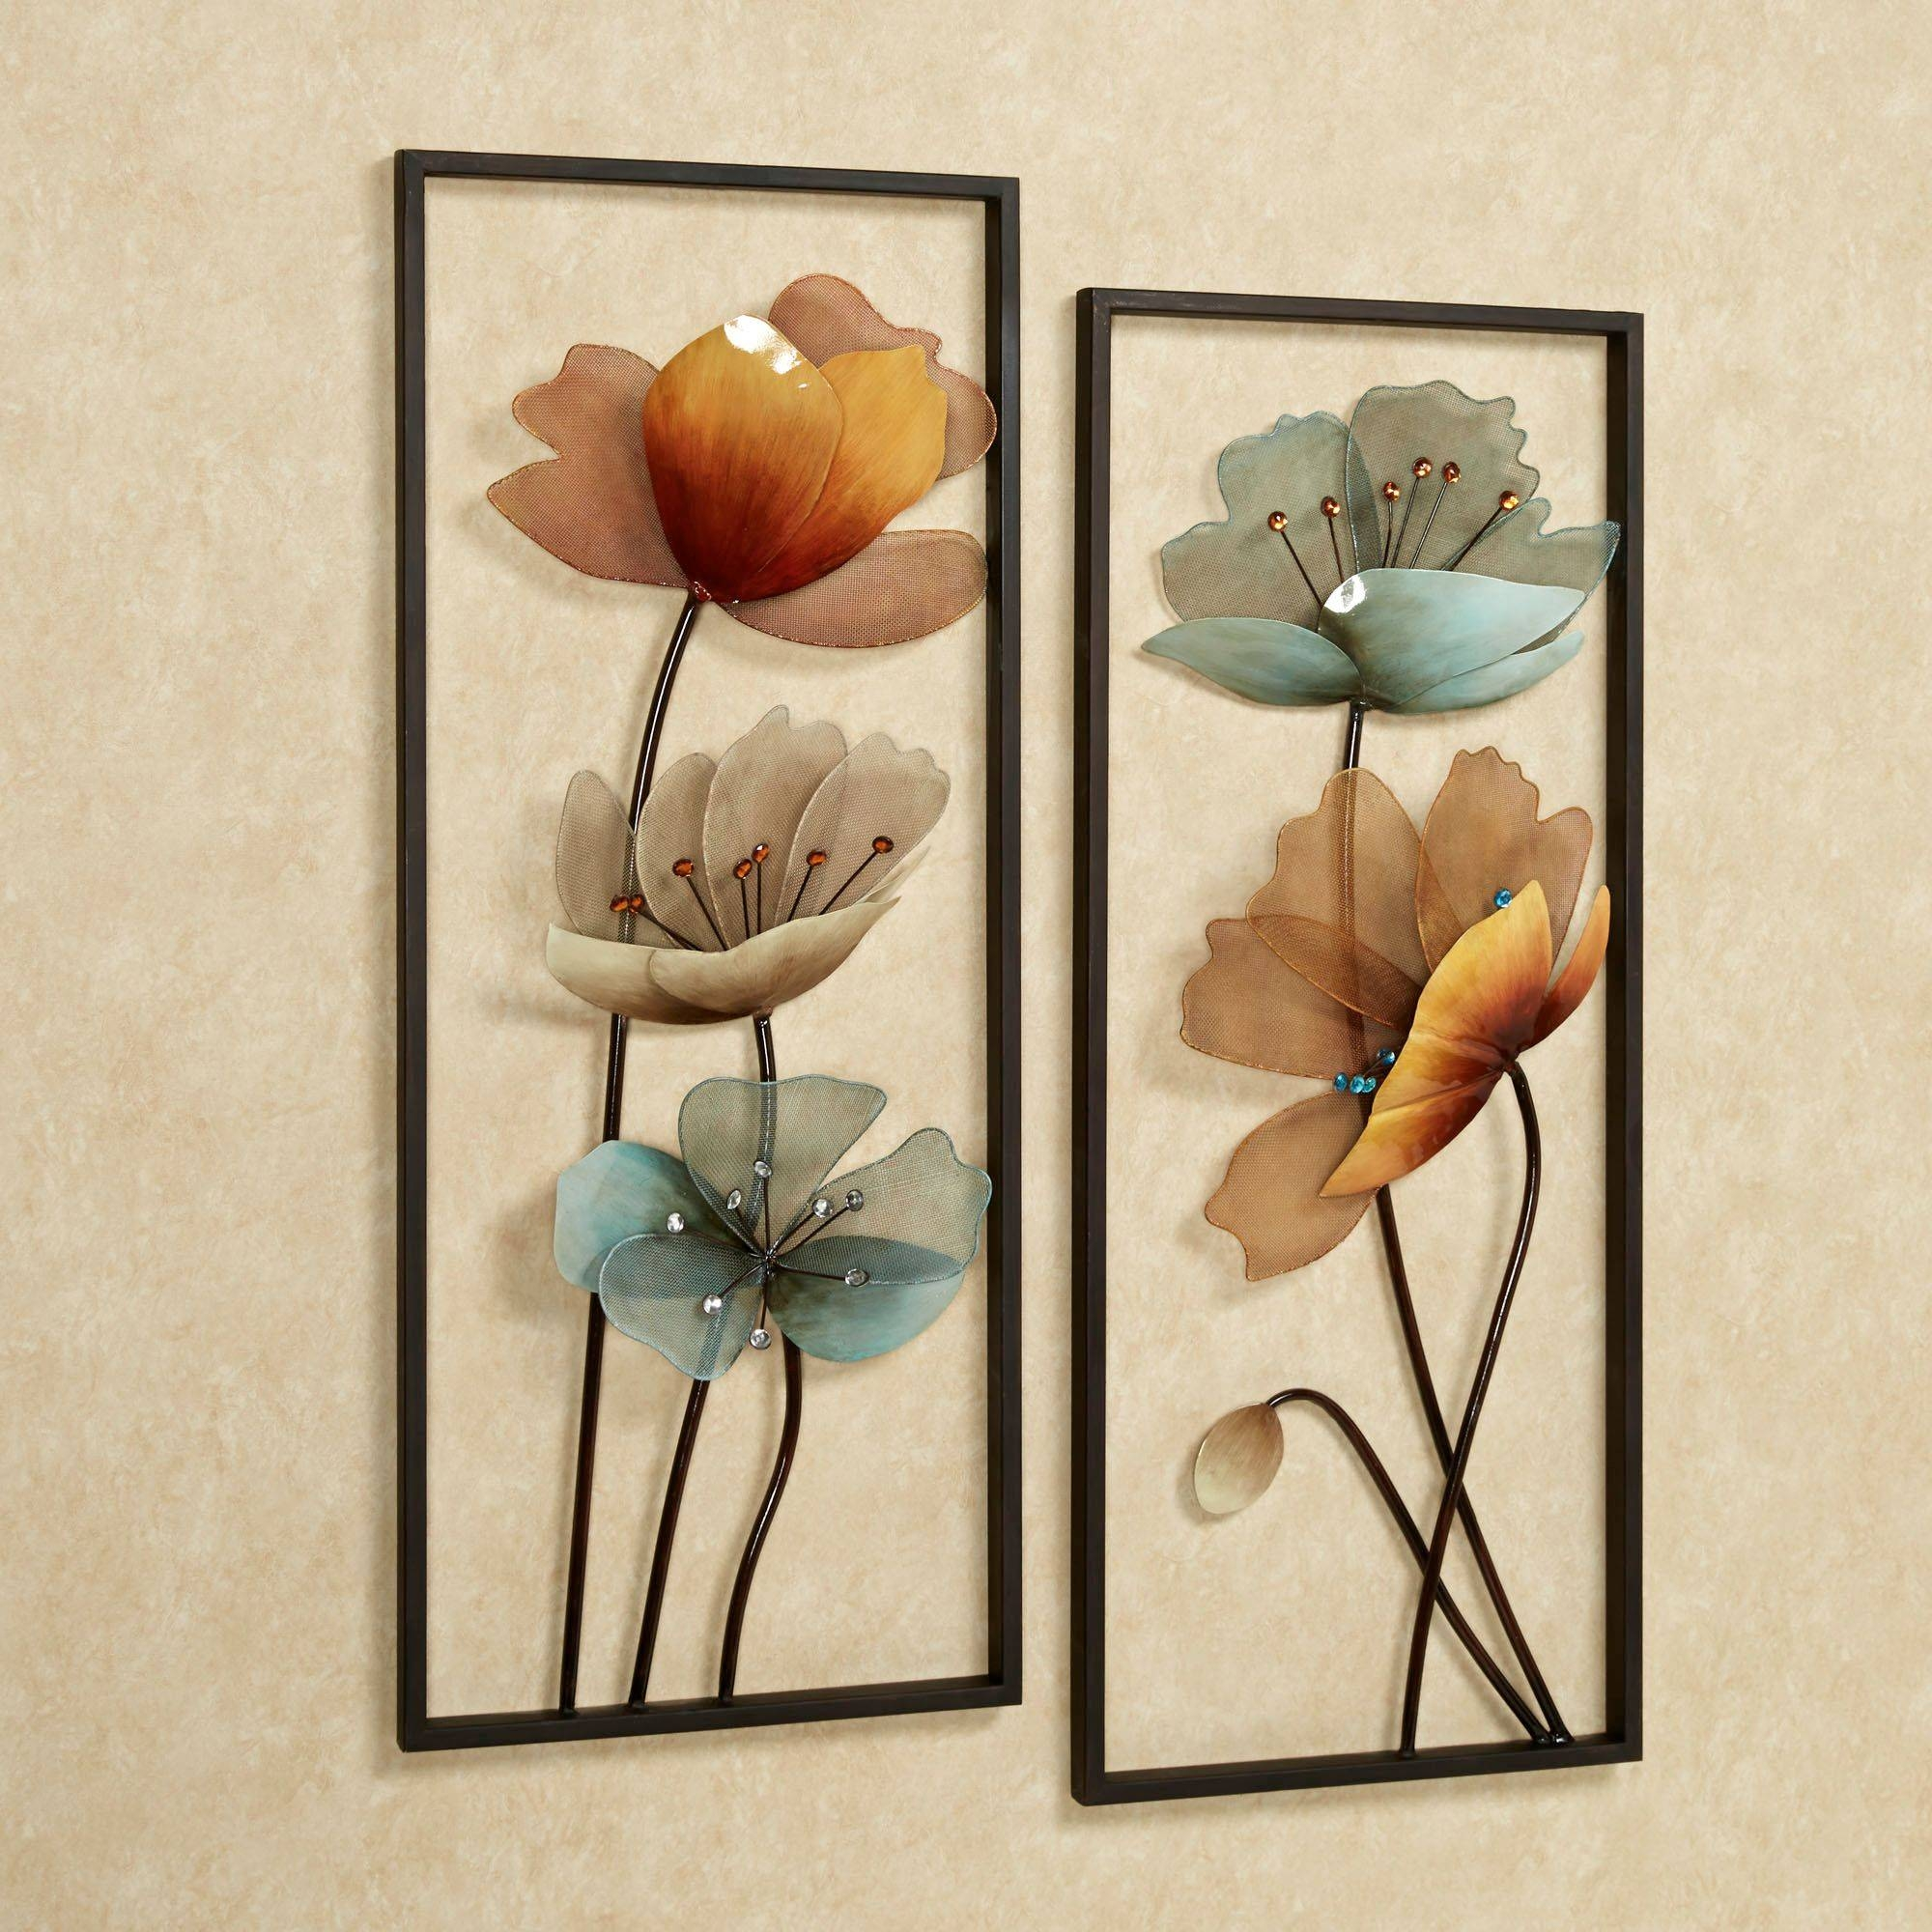 Abstract Metal Wall Art Cheap : Unique Material Decorative Metal Inside Recent Floral Metal Wall Art (View 8 of 20)